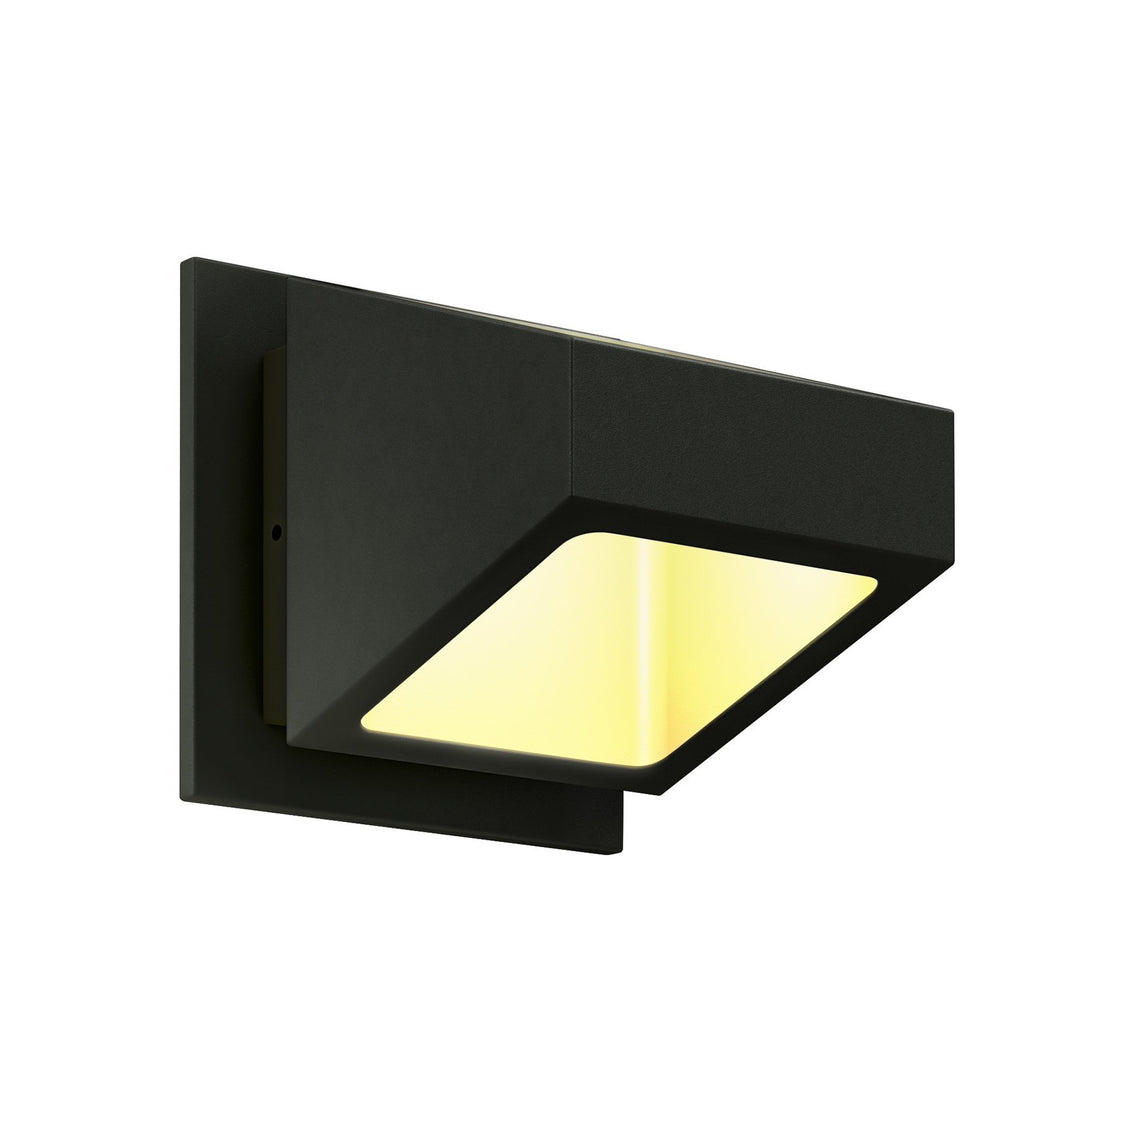 Trapzoidal Up & Down Modern Wall LED Sconce - 7 Watt - 720 Lm - Dimmable - 3000K Warm White Wall Sconce